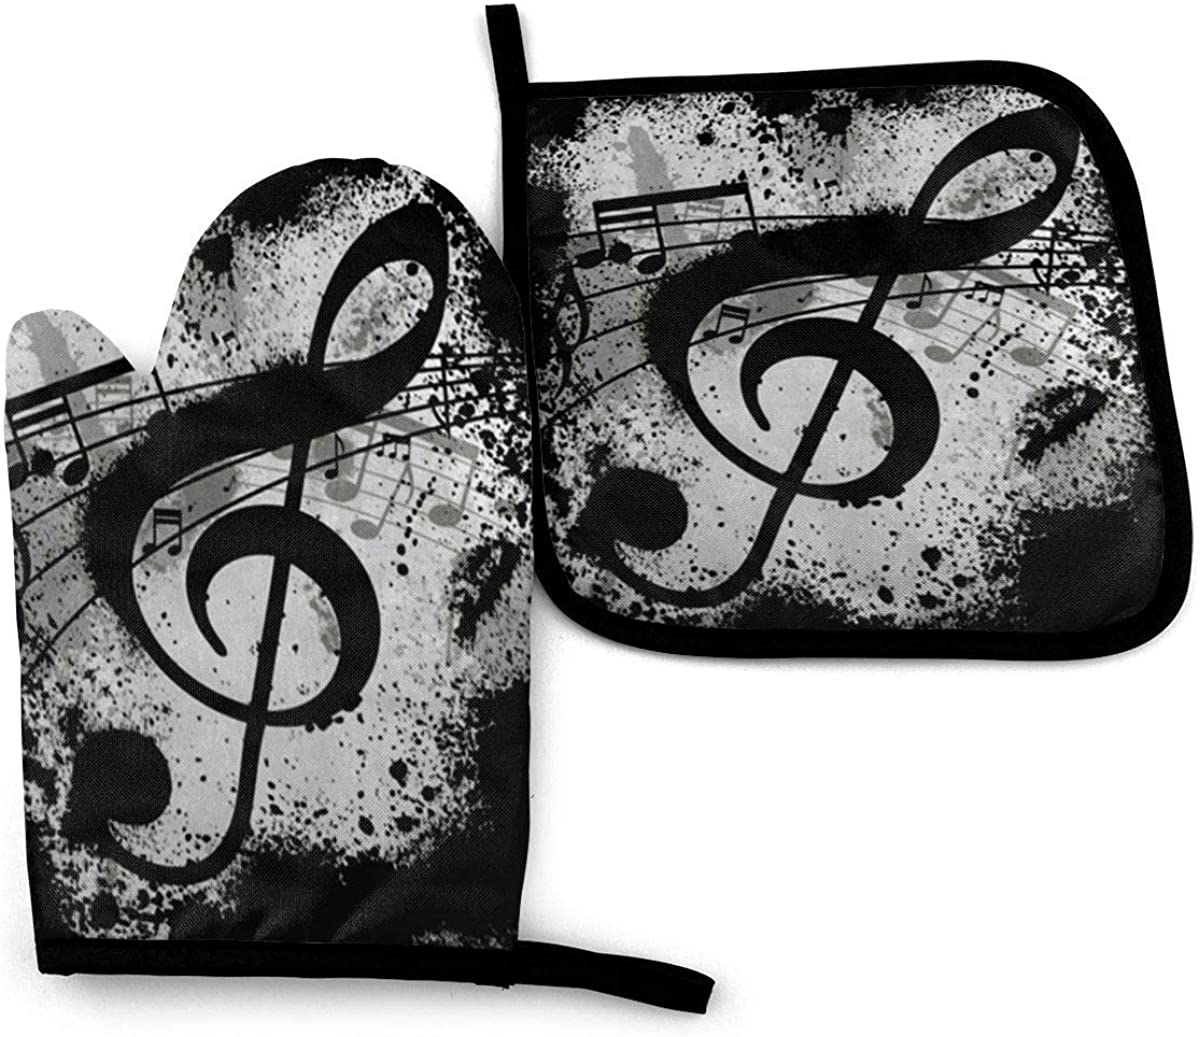 Forest Mushroom Art Paintings Oven Mitts and Potholders, Professional Heat Resistant Water-Proof Pot Holder Baking Gloves, (2-Piece Set) Black Music Note Abstract Treble Sign